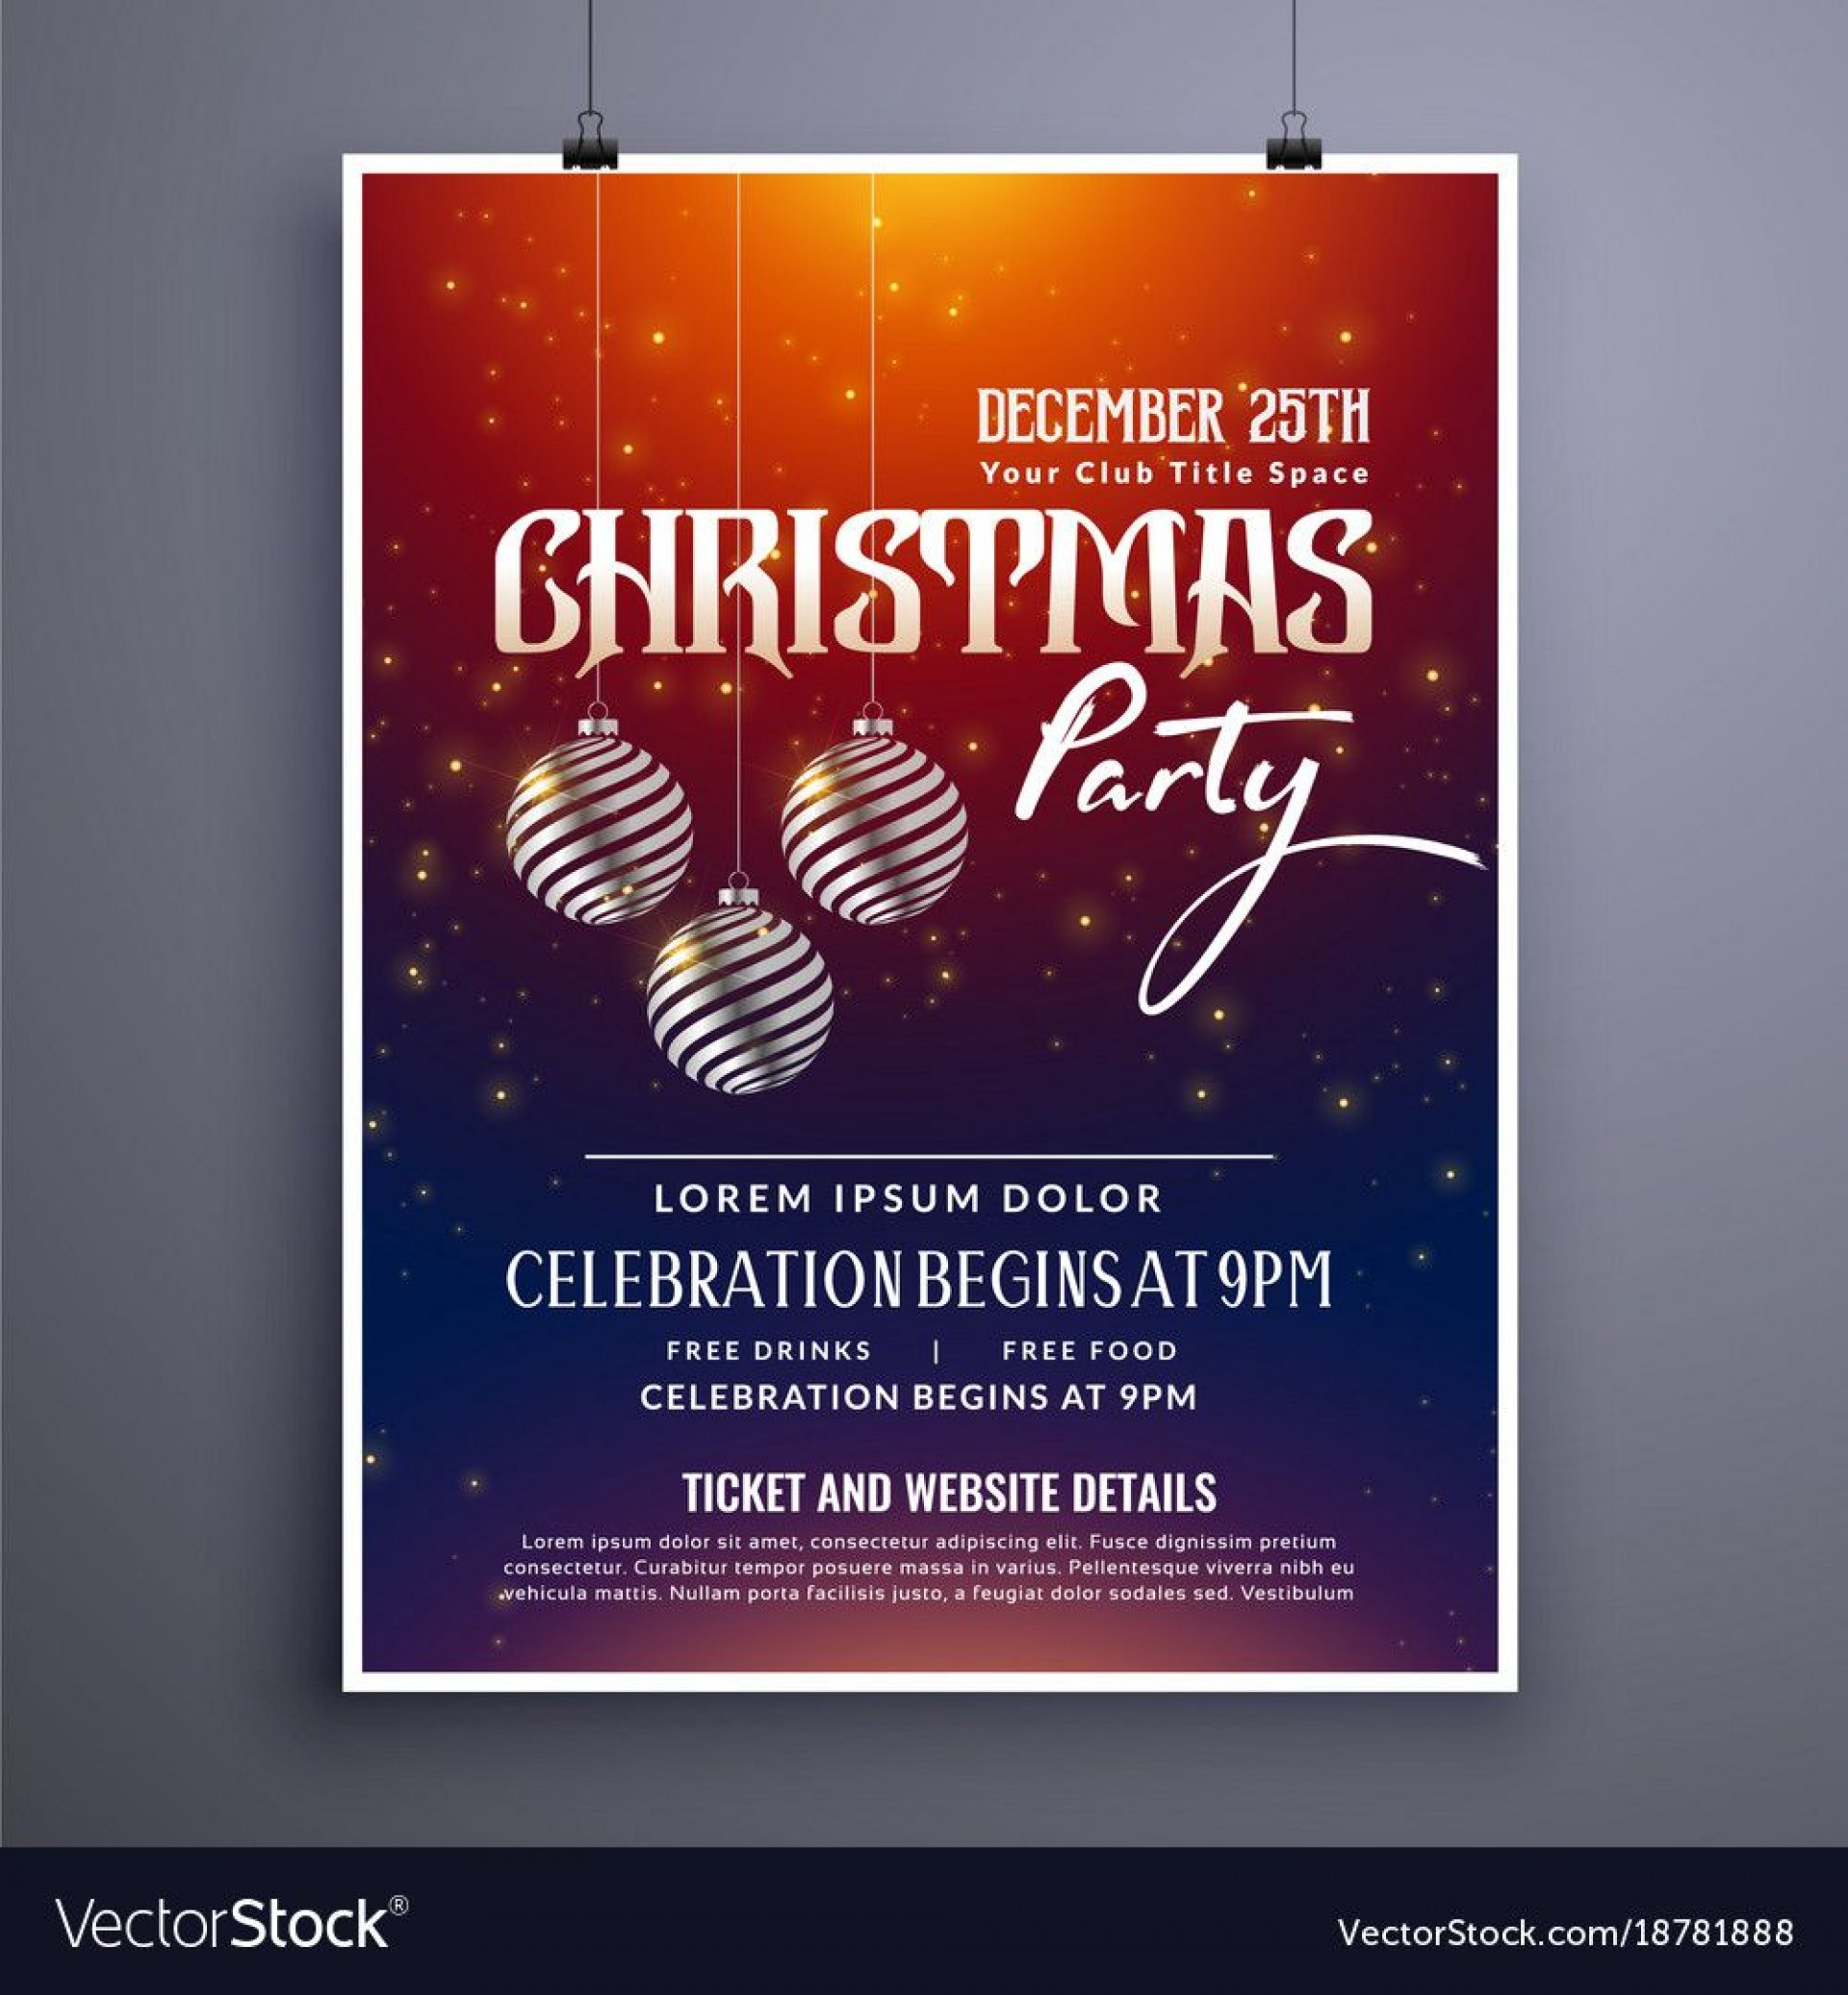 003 Remarkable Holiday Party Invitation Template Free Photo  Elegant Christma Download Dinner Printable Australia1920